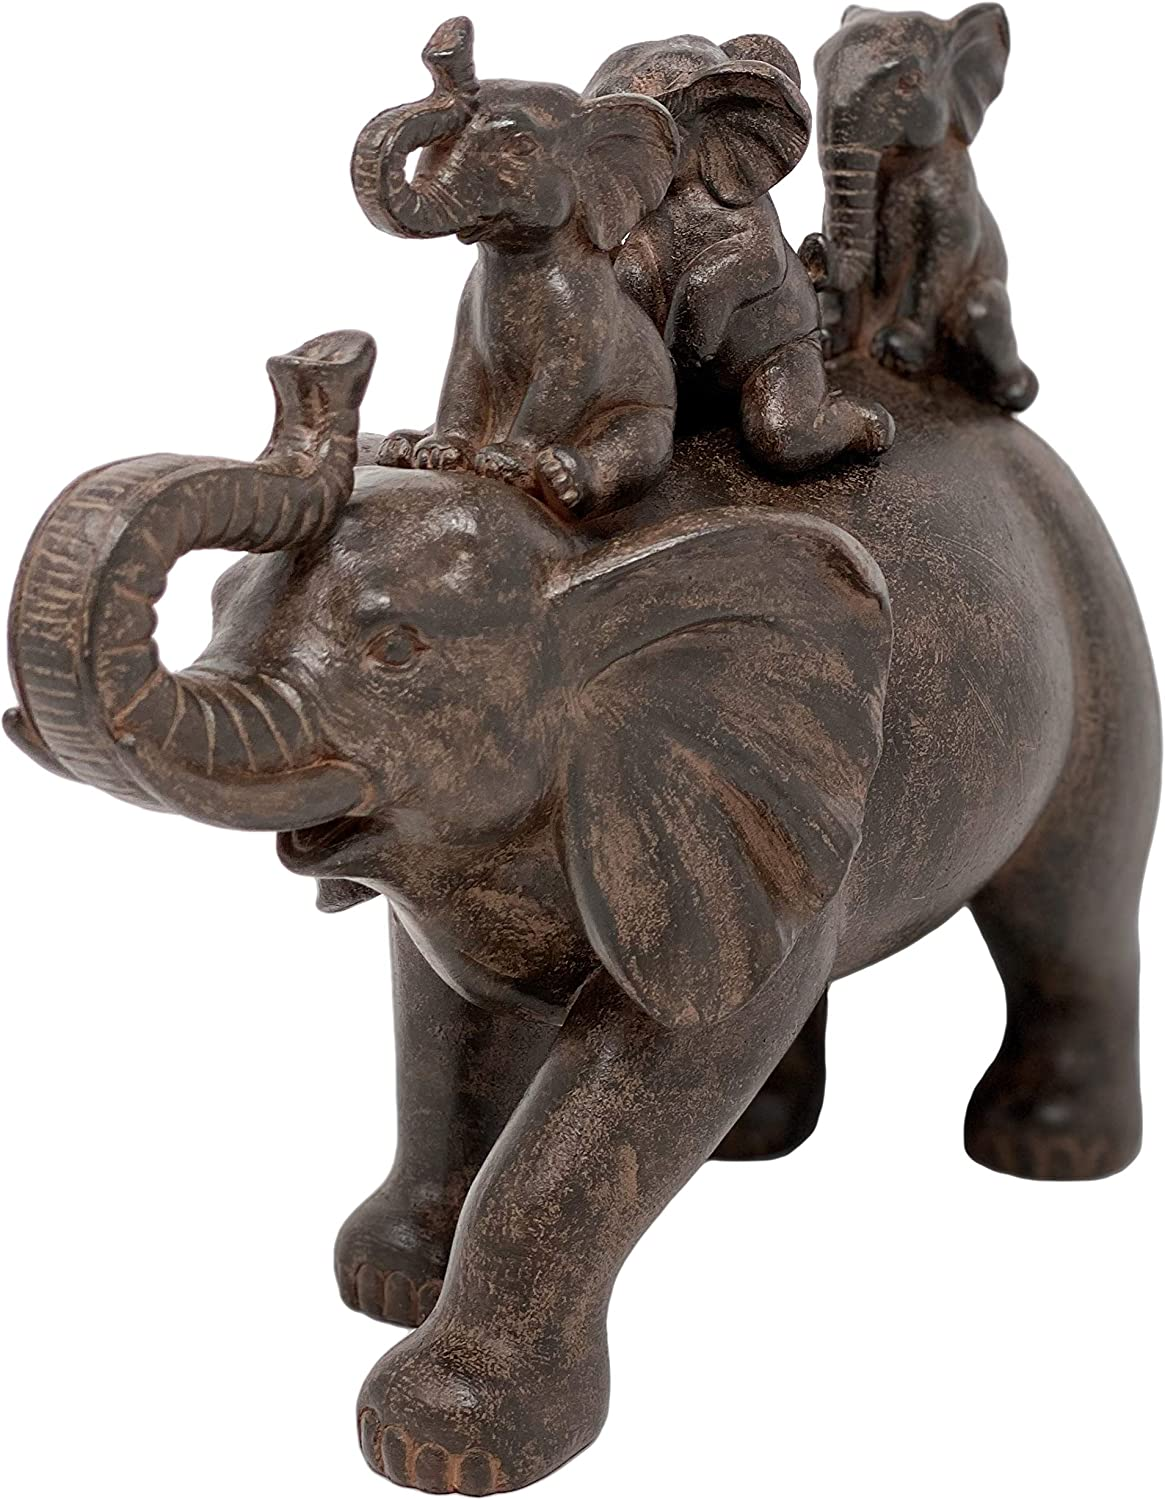 Natures Mark 8 H 3 Baby Elephants Riding an Elephant Resin Statue Figurine Home Decorative Accent Decor